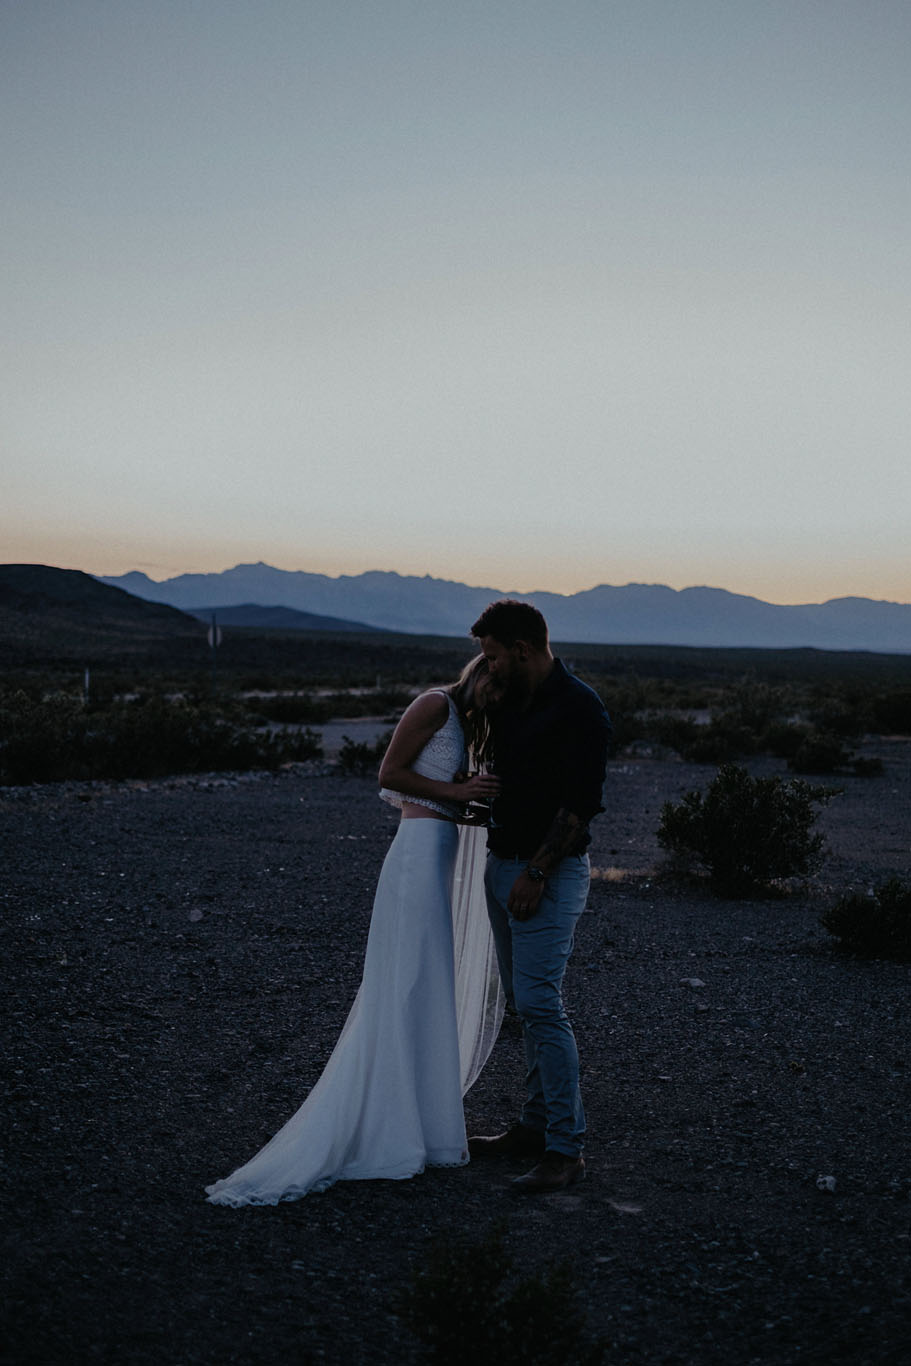 death valley adventure elopement wedding photographer national park couple sunset portrait champagne